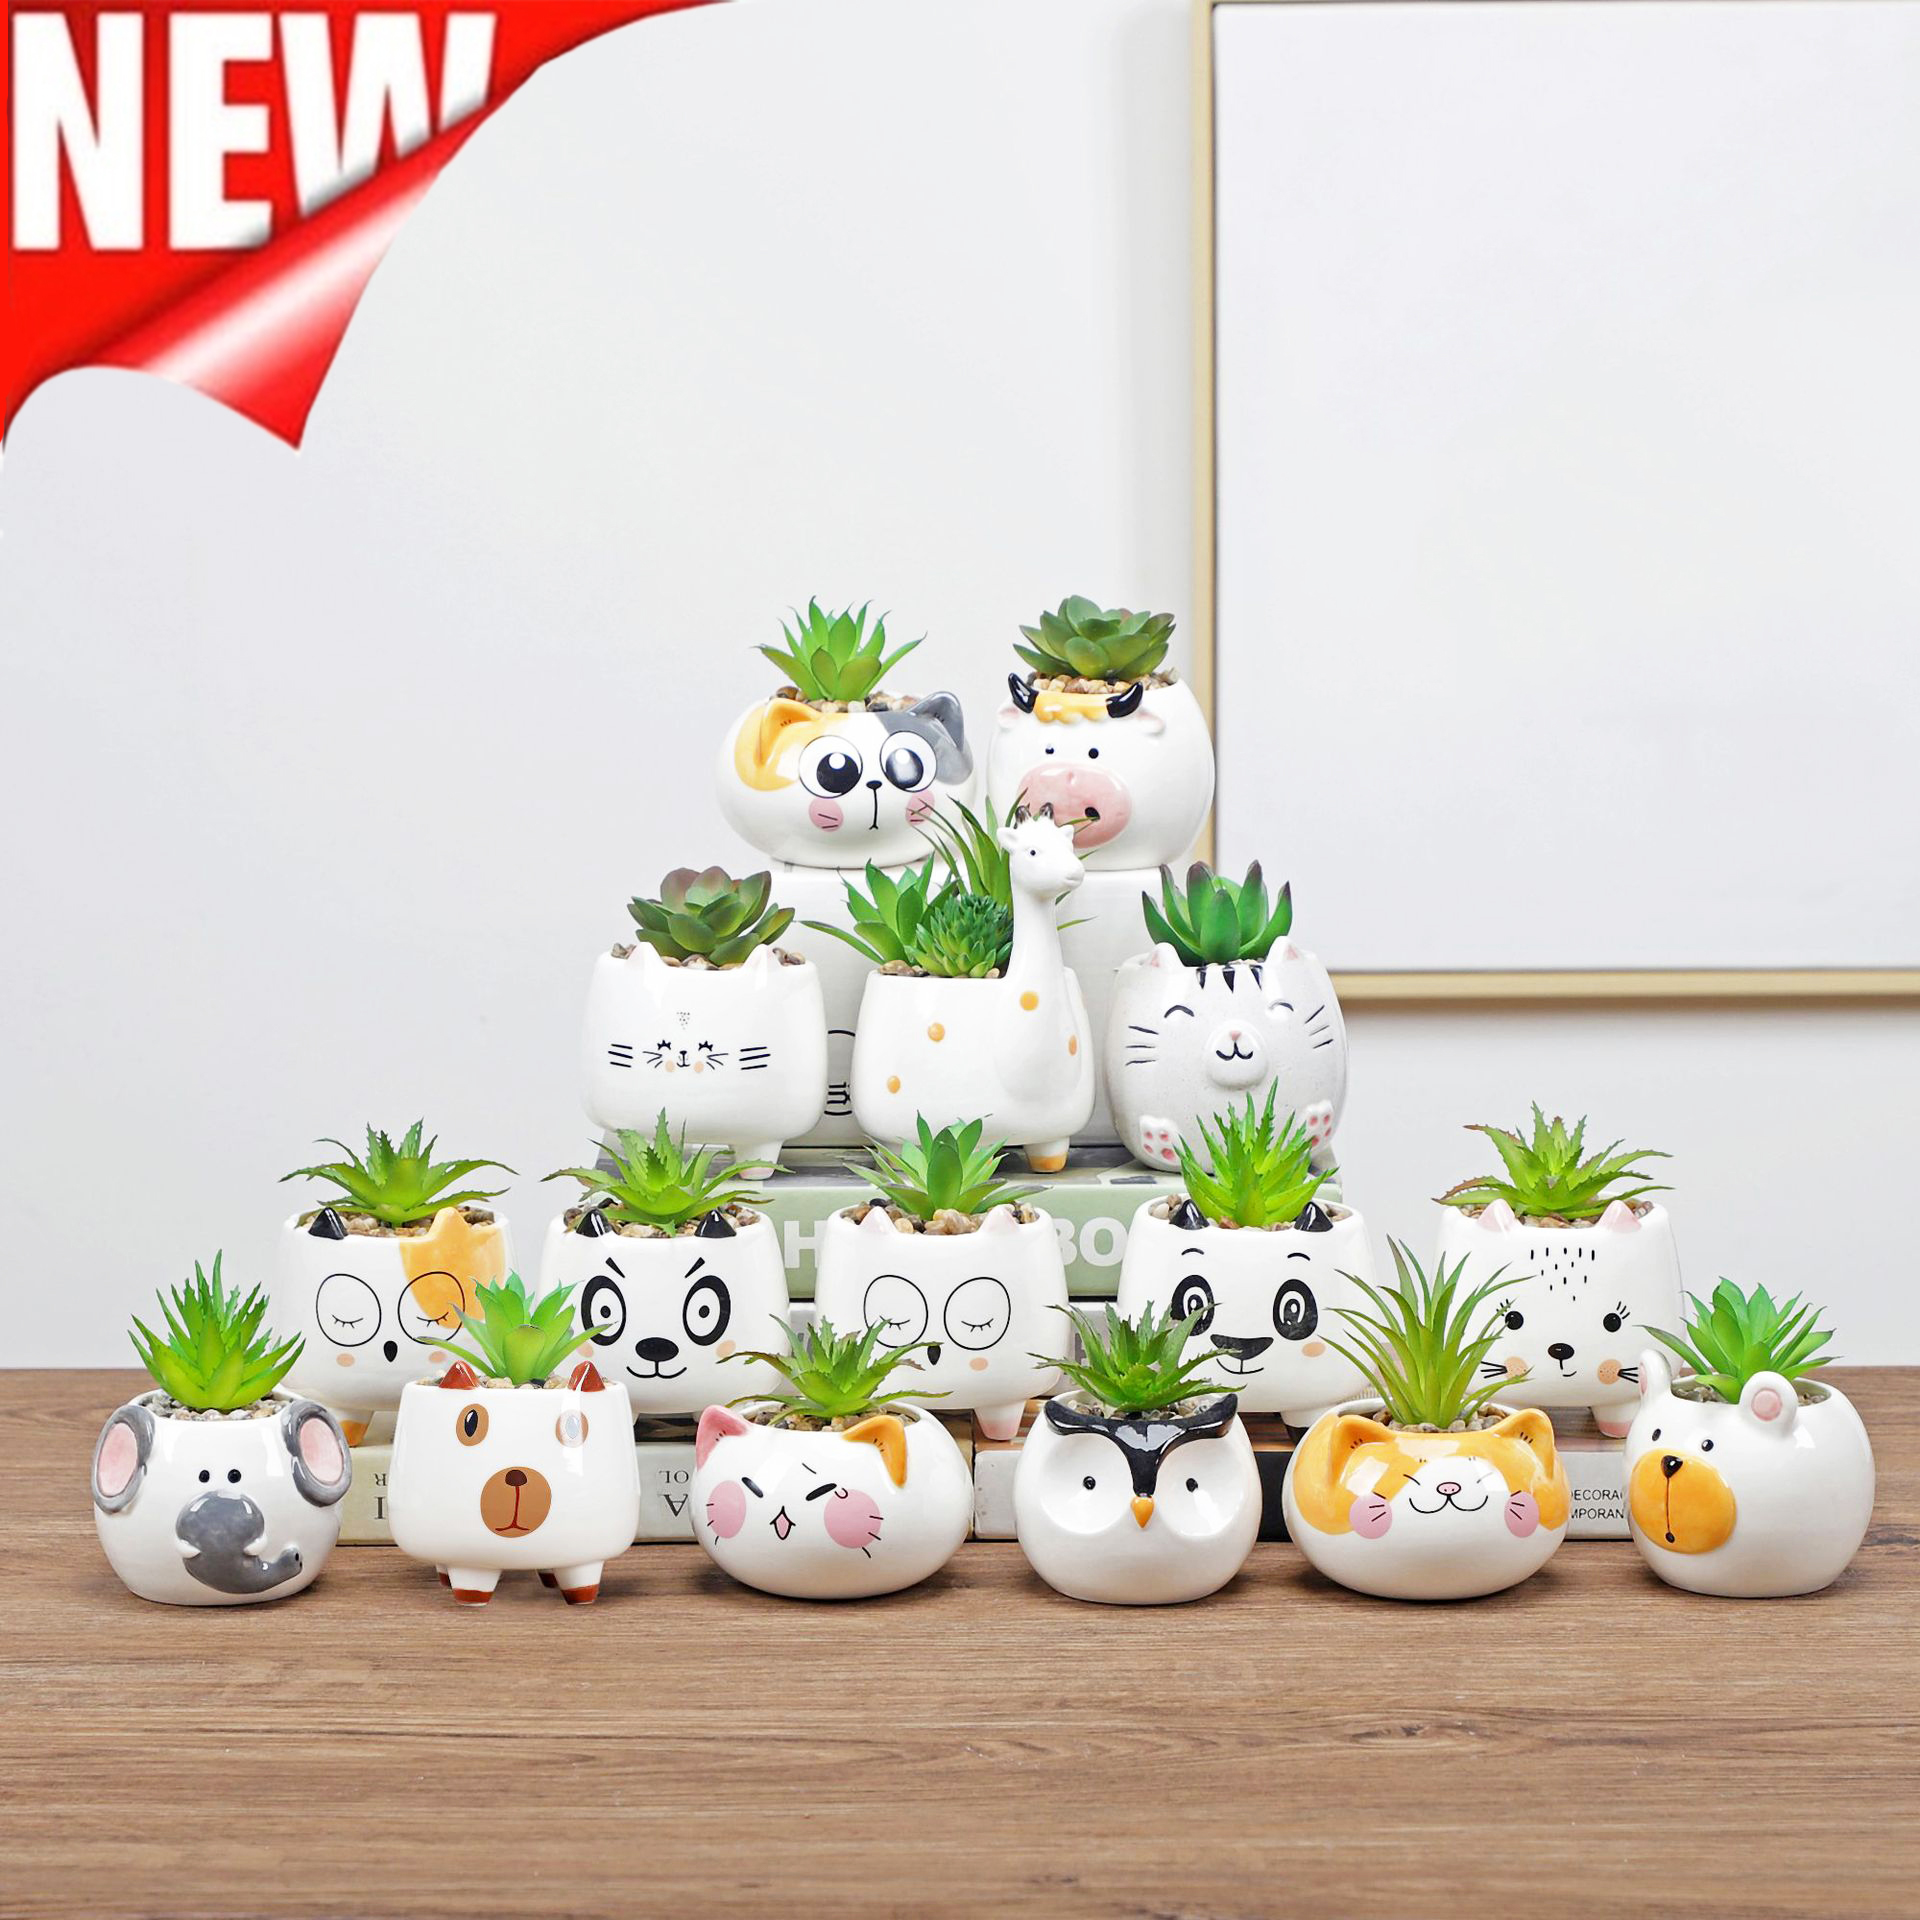 Cute Animal Flower Pot Ceramic Vase Planter Desktop Ornaments Home Decor Garden Pot Succulent Pot Plant Pot